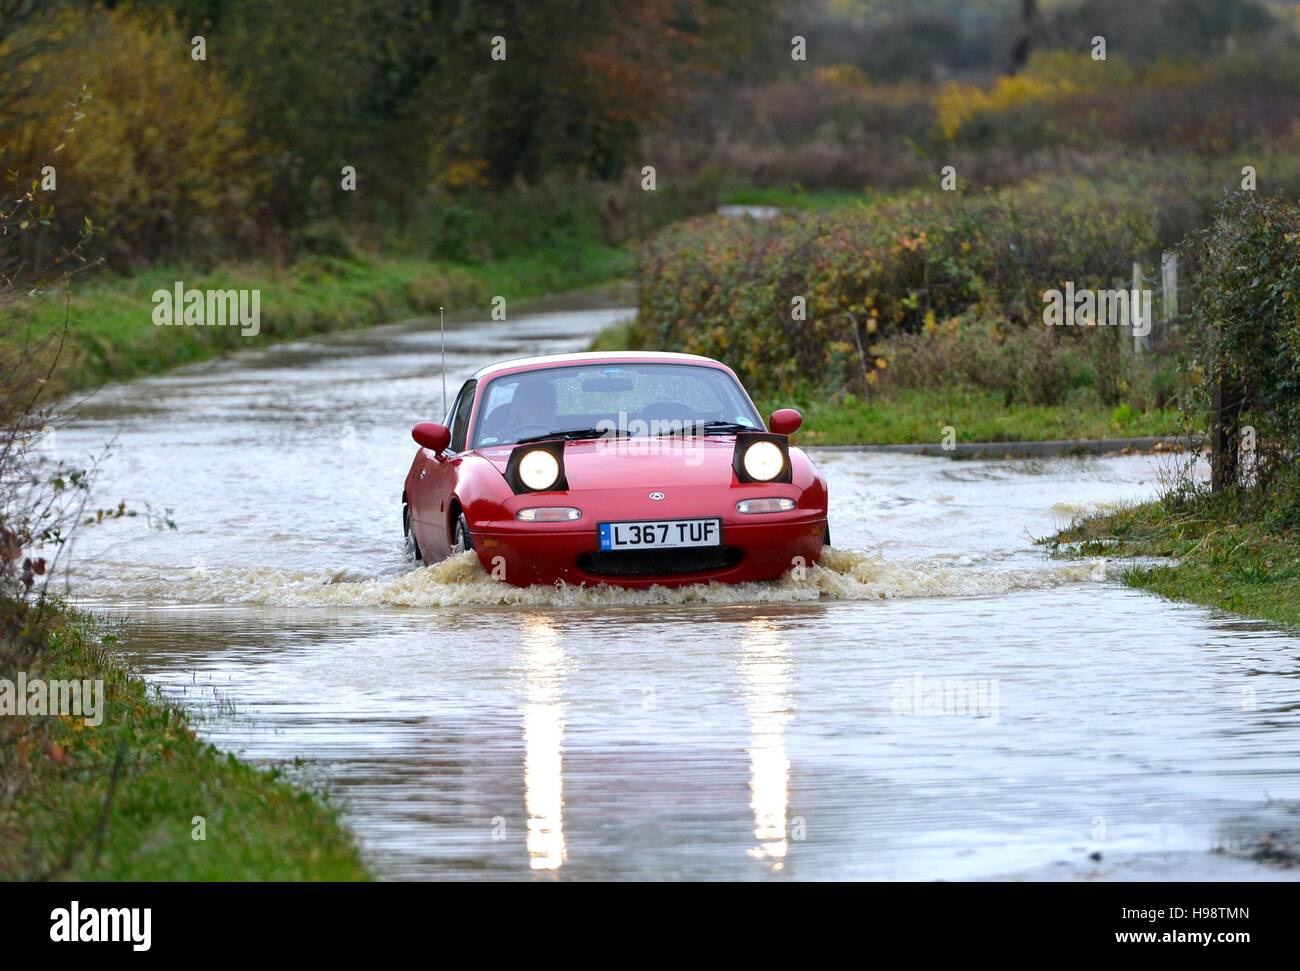 Selmeston, East Sussex. 20th November 2016. Flash flooding on roads after Storm Angus. Credit:  Peter Cripps/Alamy - Stock Image